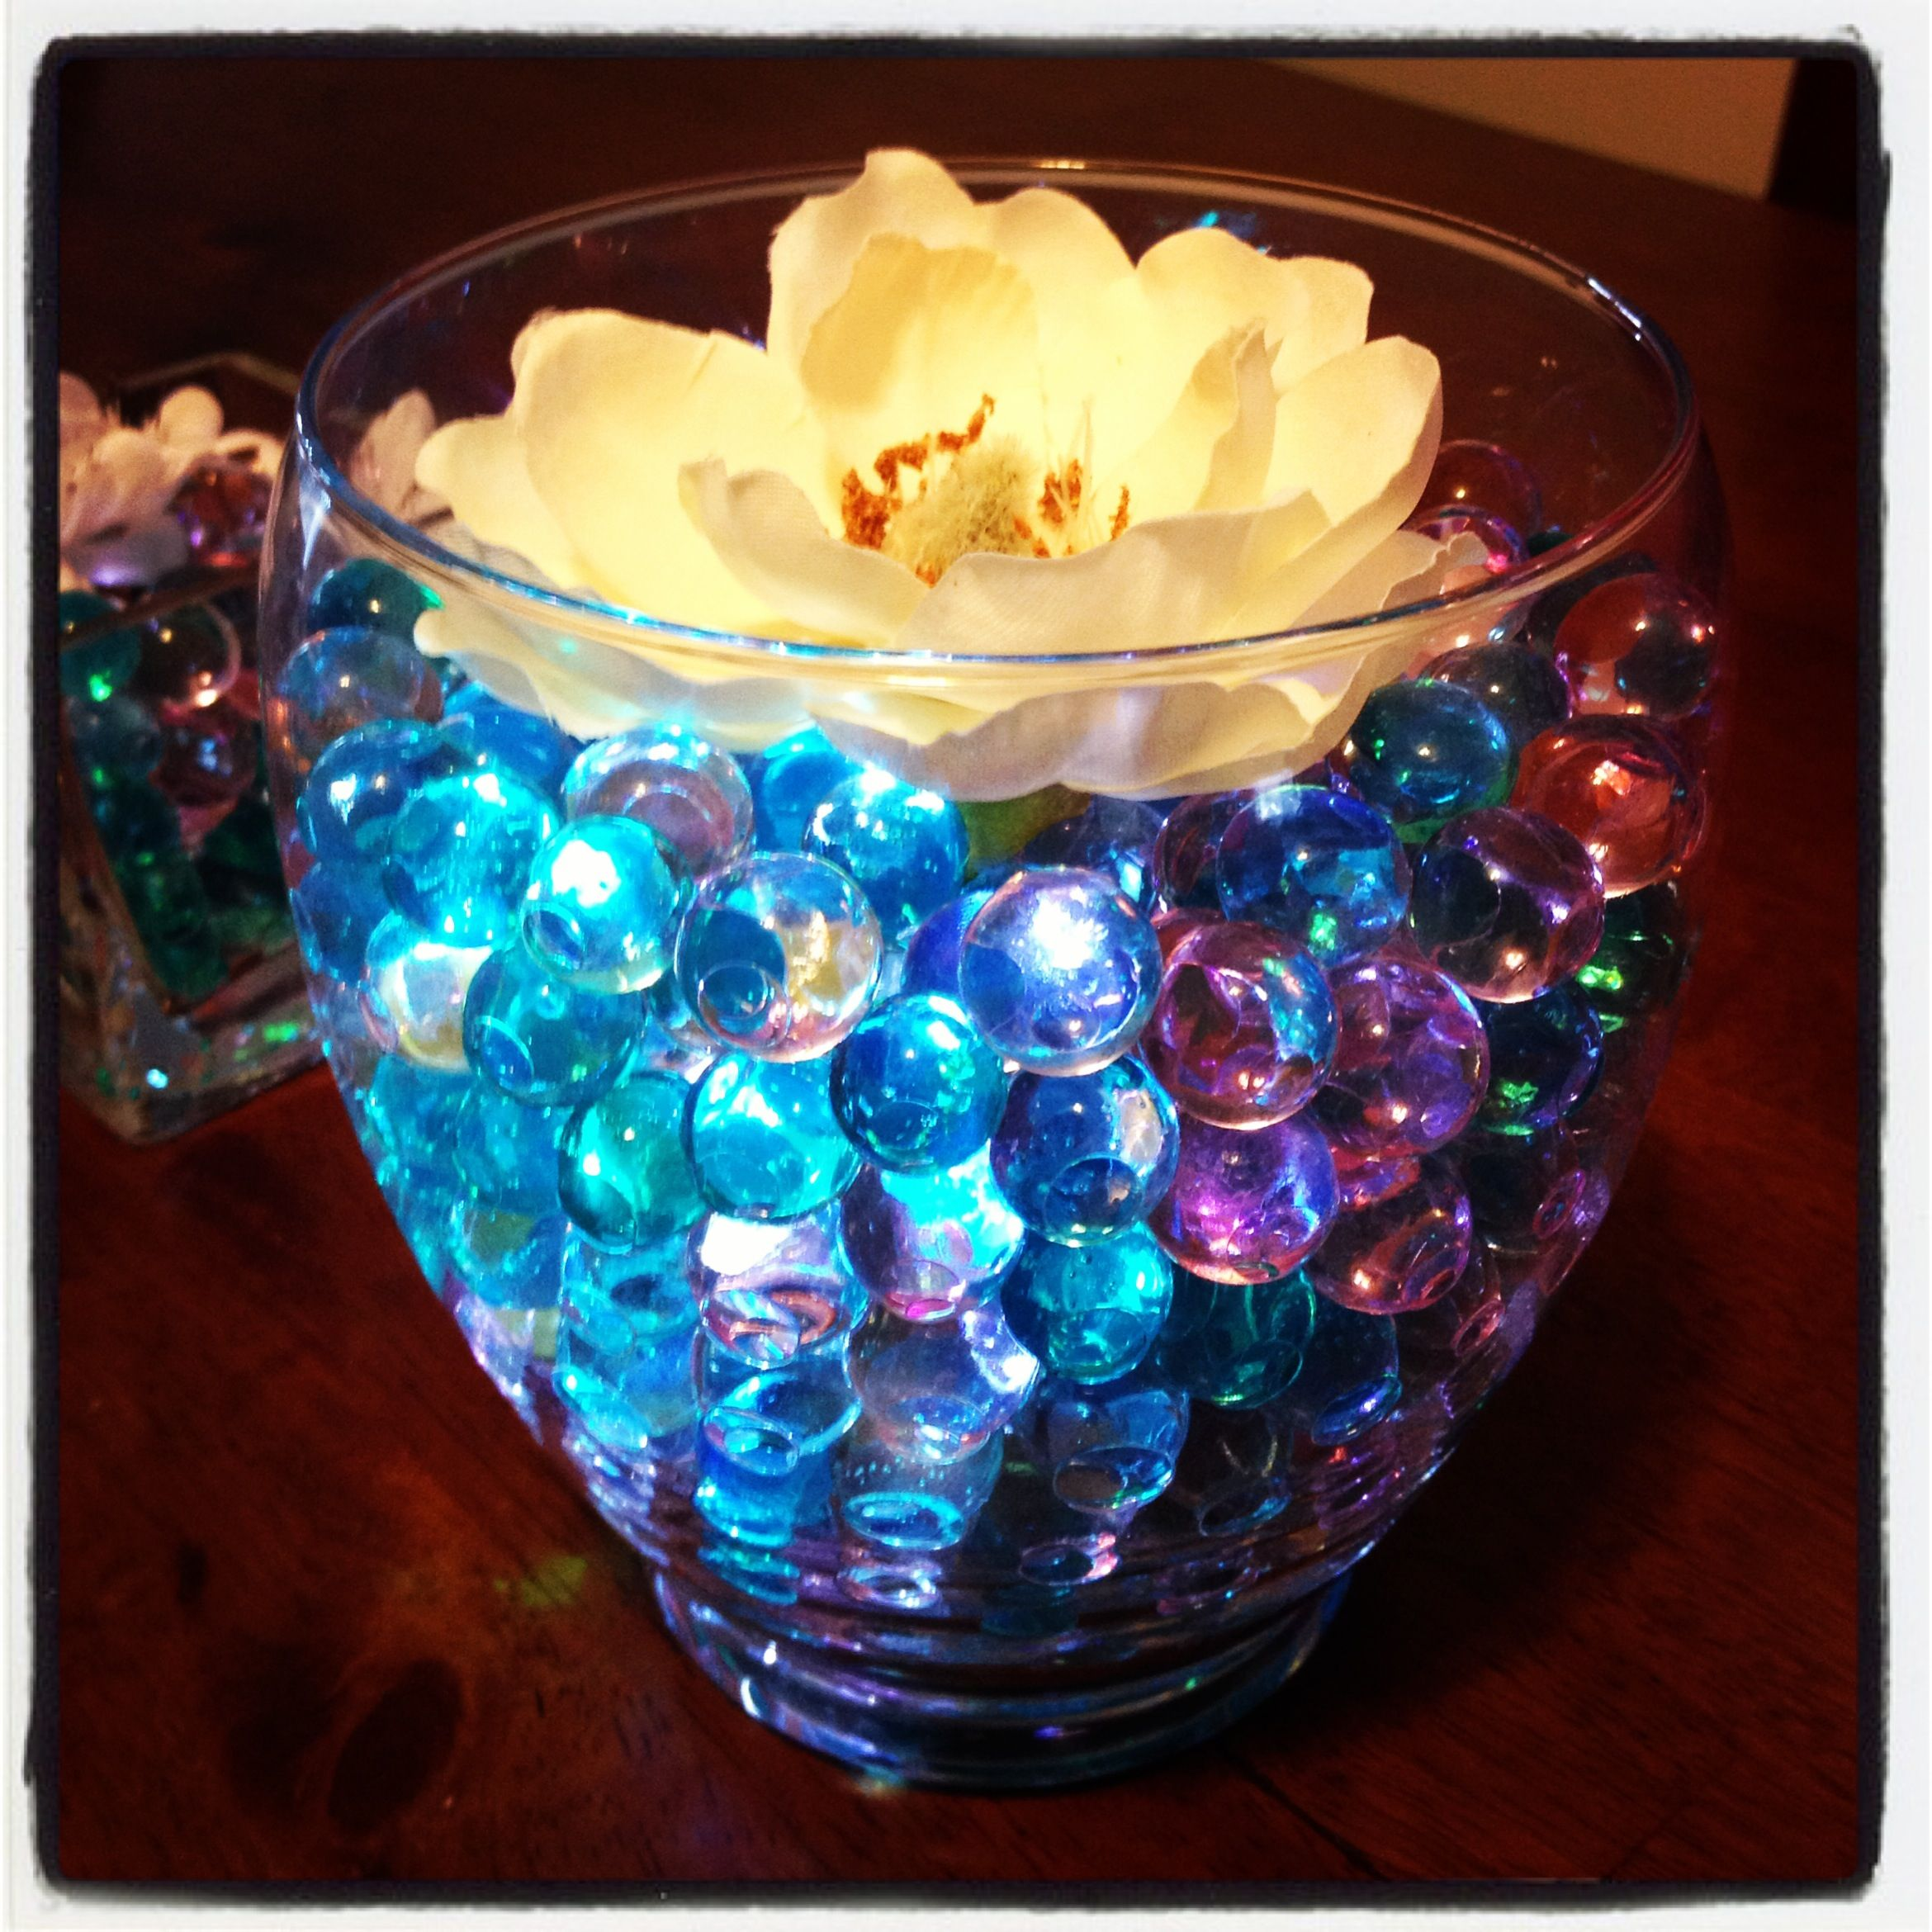 Cute Wedding Centerpiece Ideas: Centerpiece With Water Beads And Light! I Love The Color